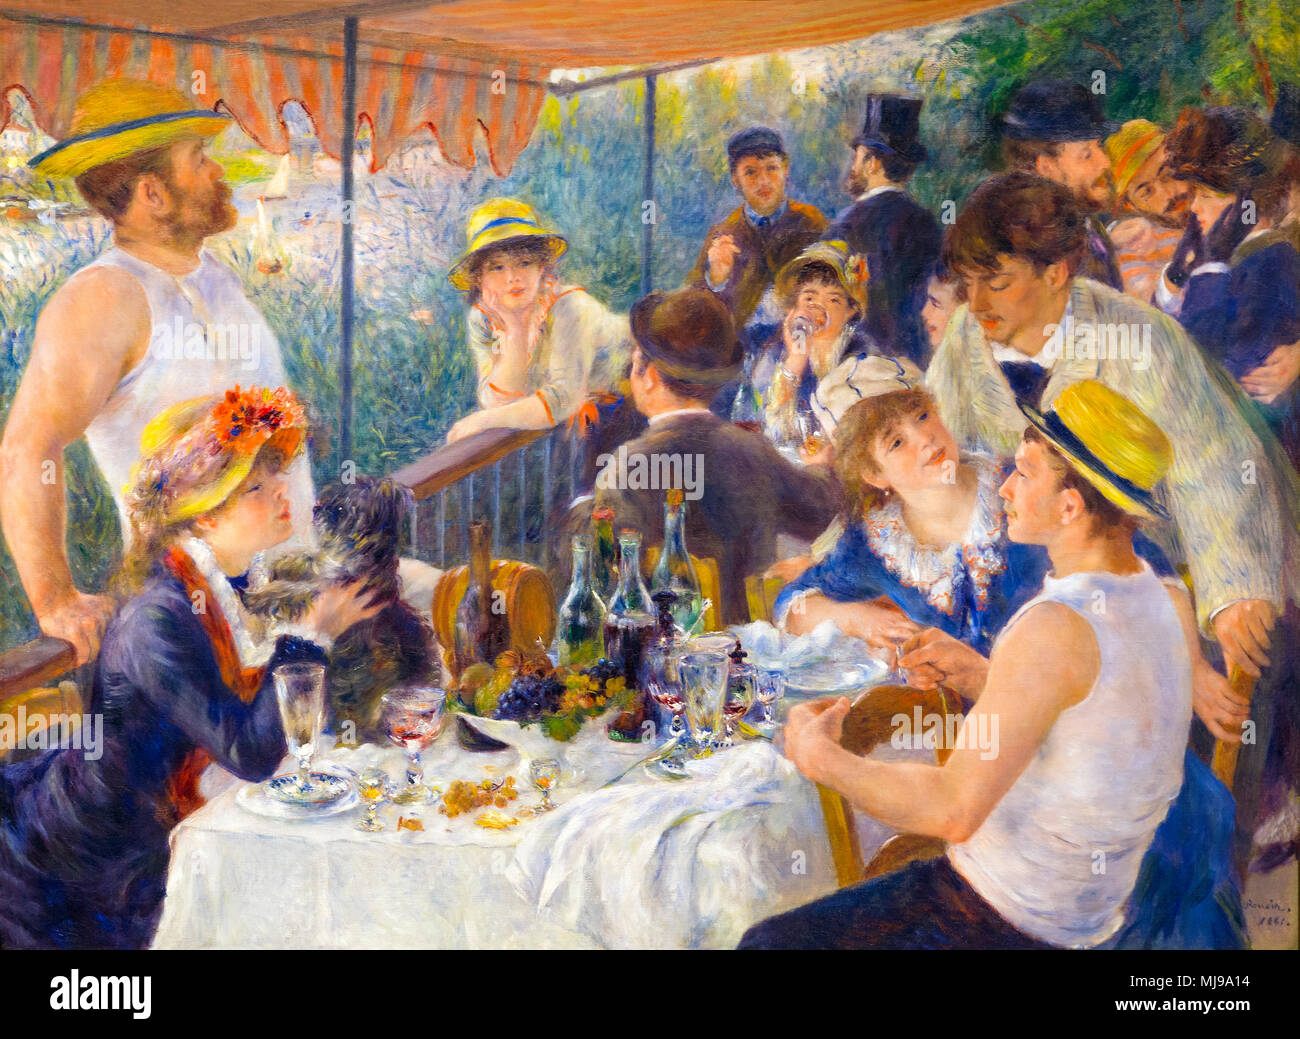 Luncheon of the Boating Party, Pierre-Auguste Renoir, 1880-1881, Phillips Collection, Washington DC, USA, North America - Stock Image